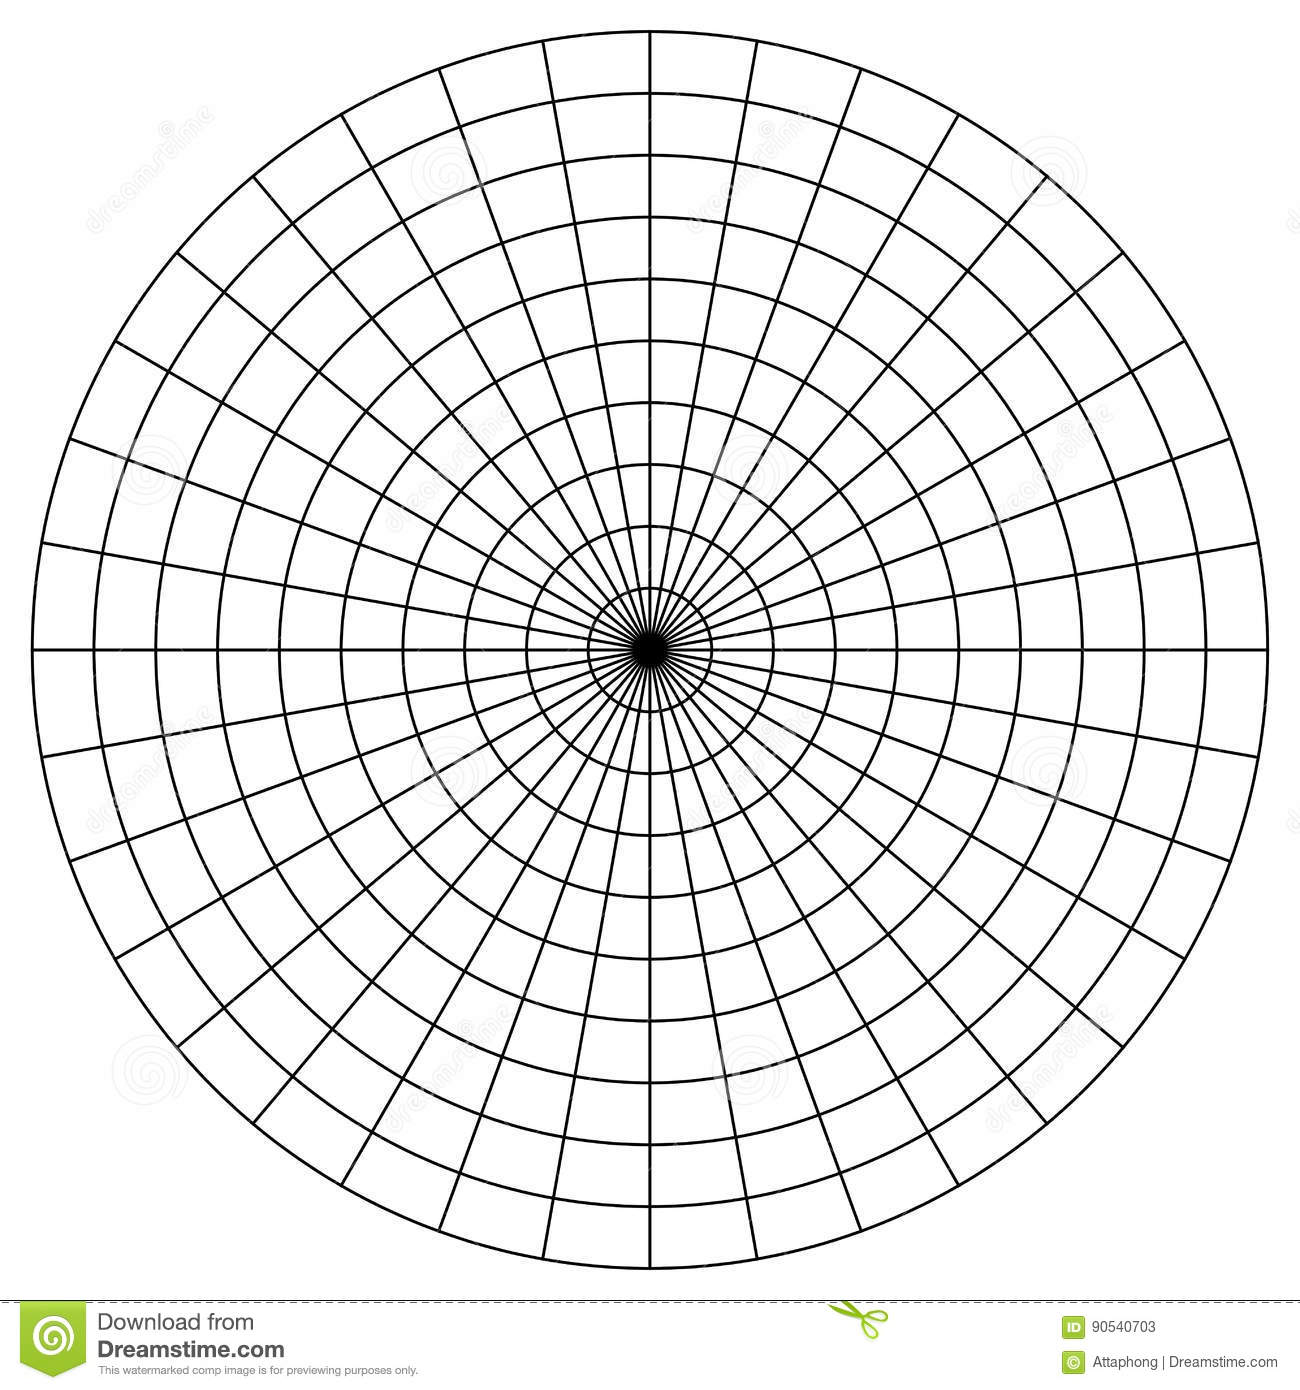 Worksheet graph blank grass fedjp worksheet study site worksheet graph blank blank polar graph paper protractor pie chart vector stock royalty free download graph nvjuhfo Gallery